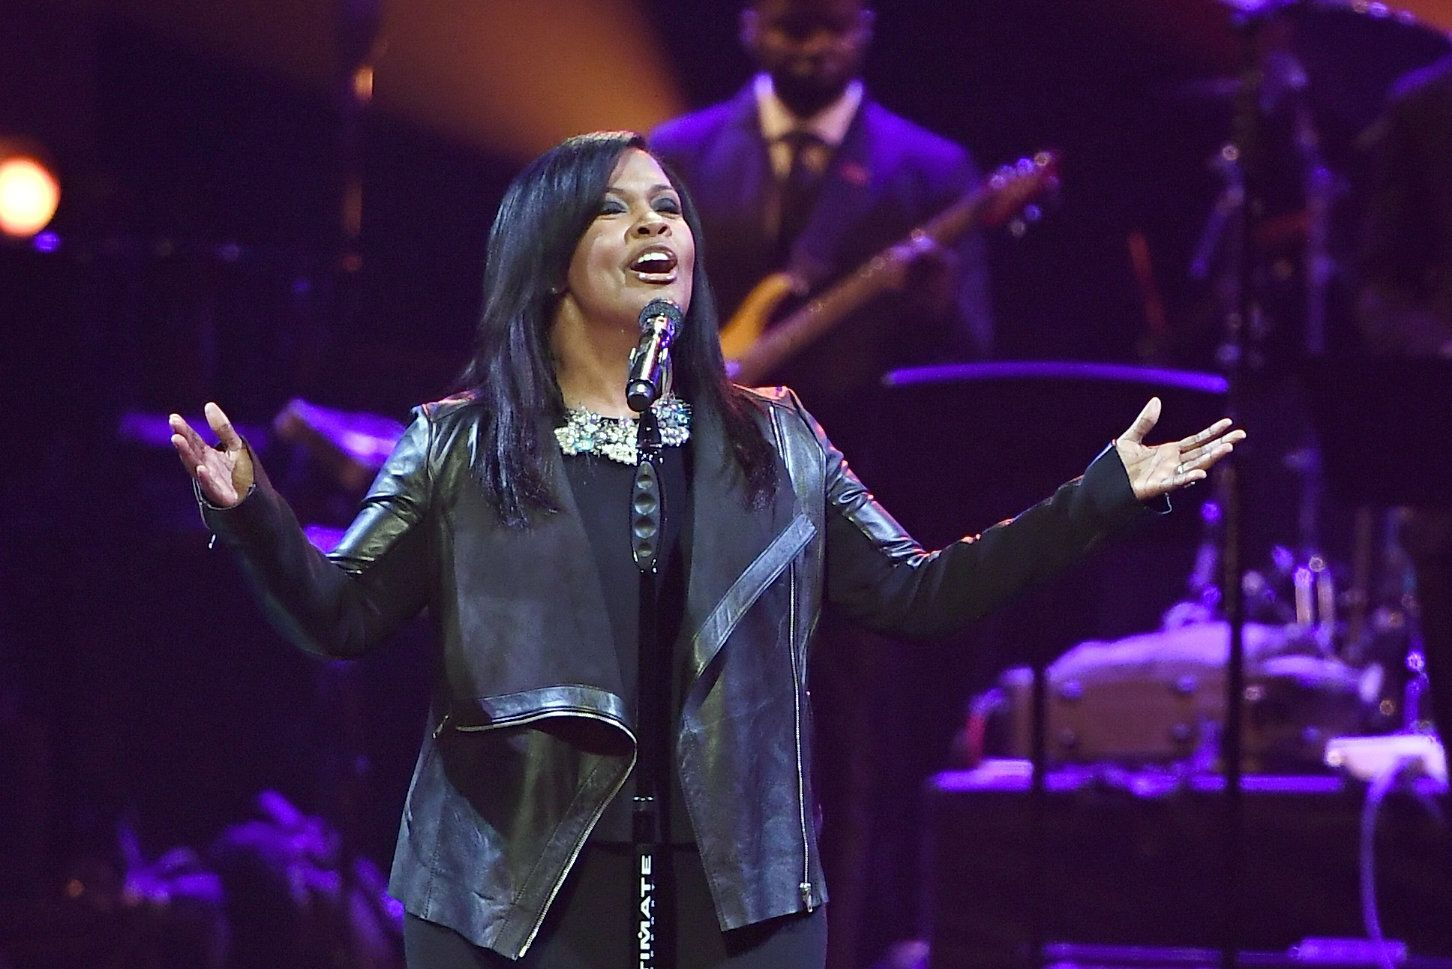 HOUSTON, TX - FEBRUARY 03:  Recording artist CeCe Winans performs onstage during the BET Presents Super Bowl Gospel Celebration at Lakewood Church on February 3, 2017 in Houston, Texas.  (Photo by Marcus Ingram/Getty Images for BET)